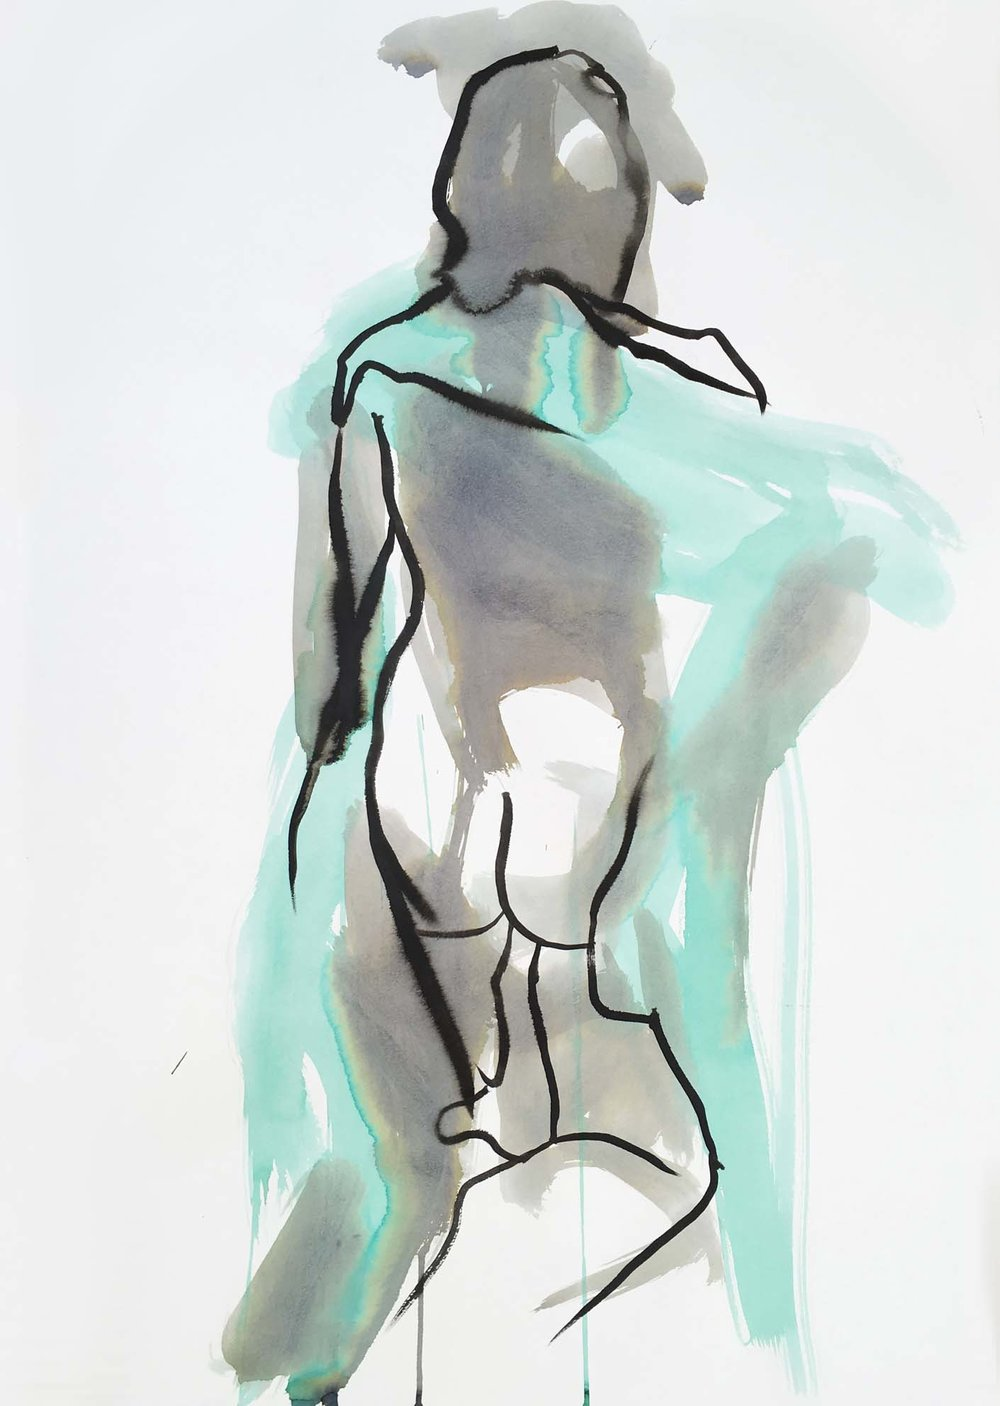 Woman with a Green Scarf III, 2017. Ink and wash on paper, w49 x h69cm.